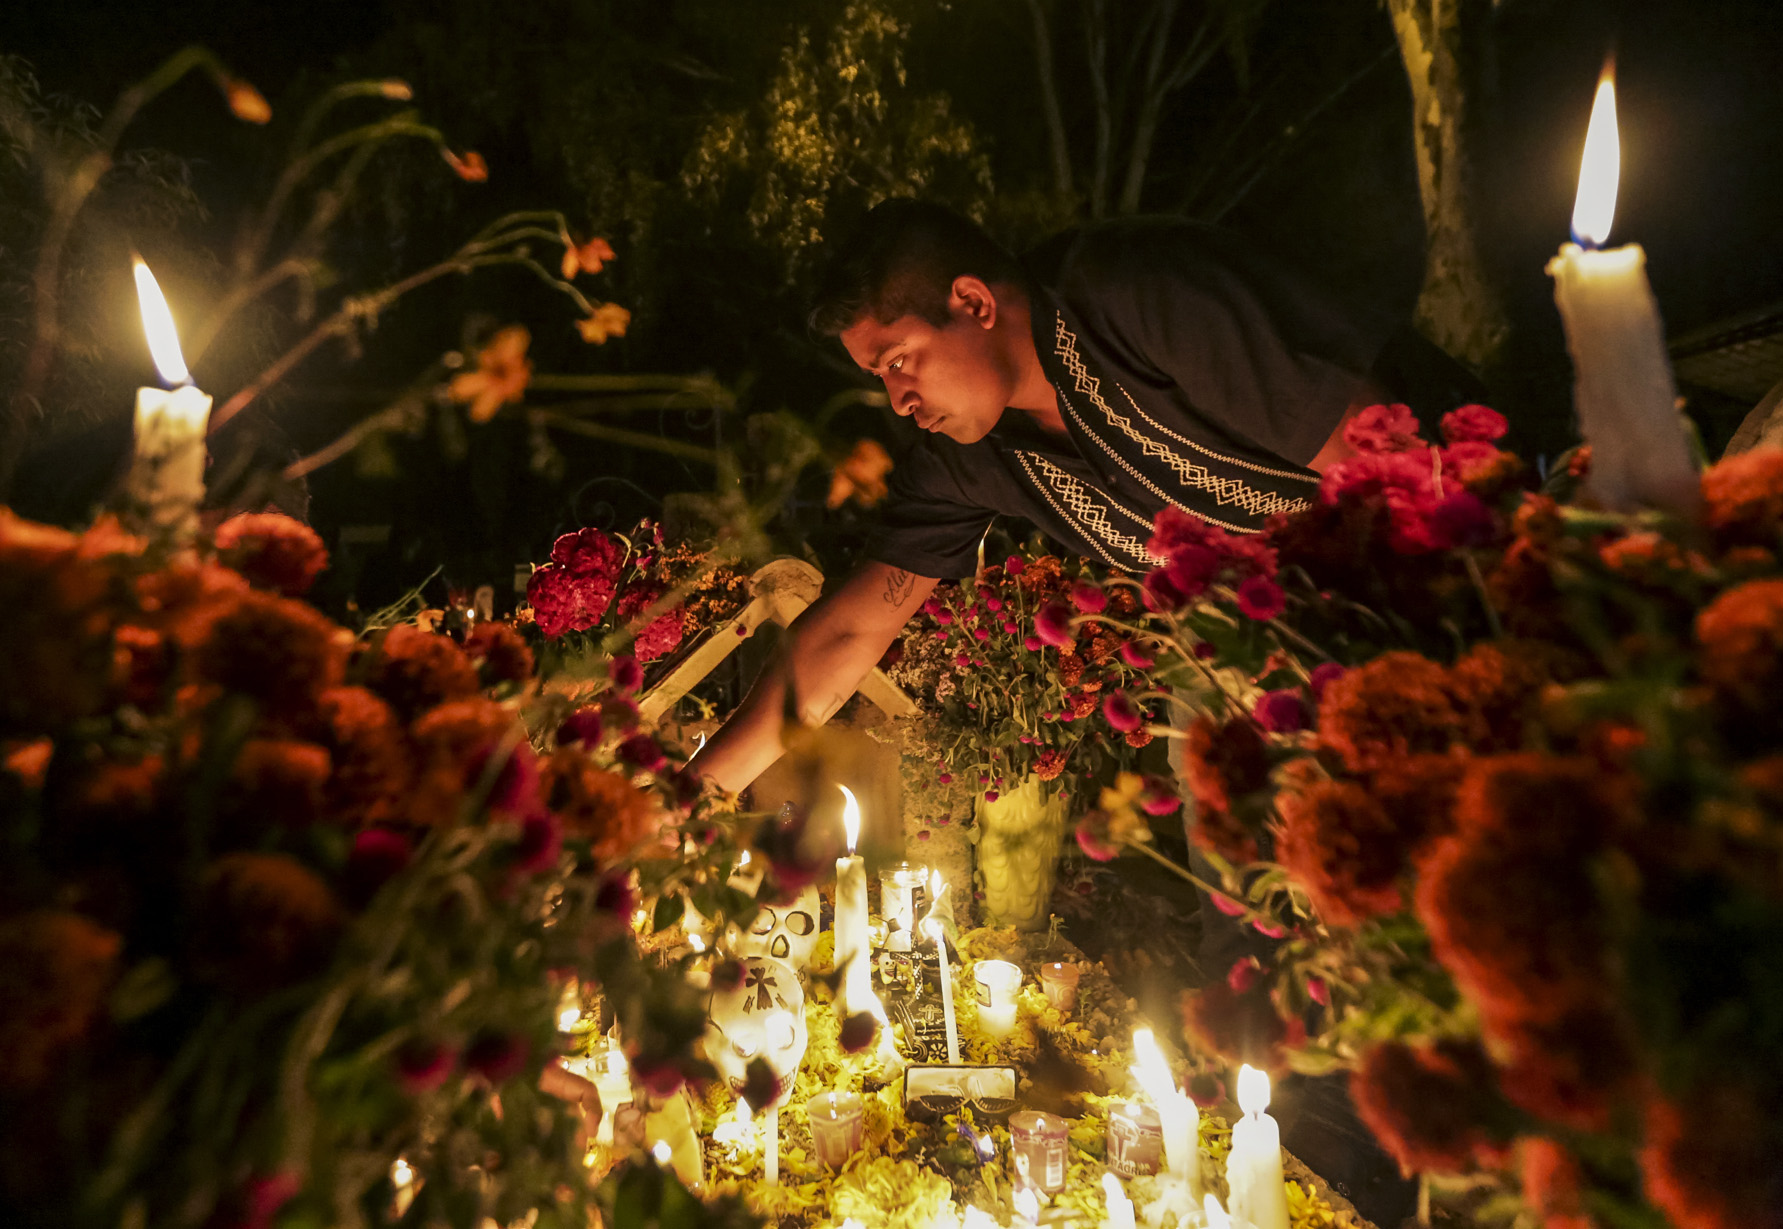 A man lights candles on a family members' grave during Dîa de Muertos (Day of the Dead) in Oaxaca, Mexico, on October 31, 2018. Dîa de Muertos is a Mexican holiday where family and friends gather to celebrate and remember people who have died, and help support their spiritual journey.